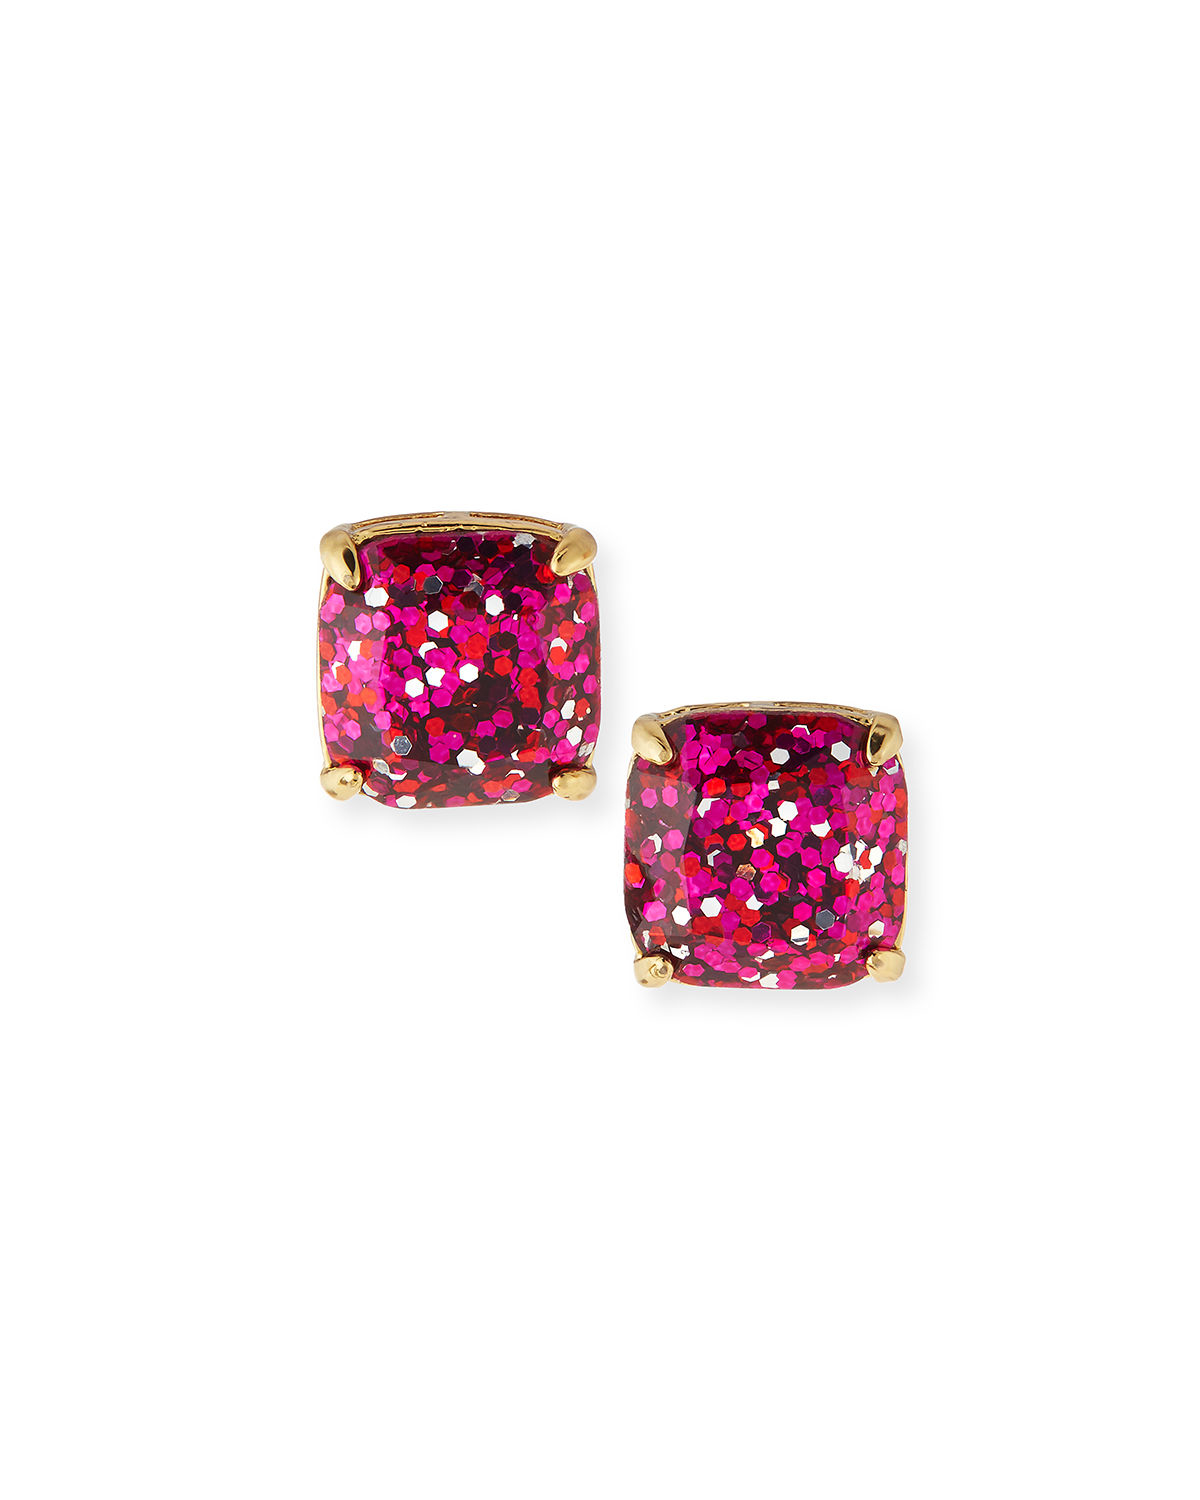 Kate spade Small Glitter Stud Earrings in Gold (PINK/GOLD